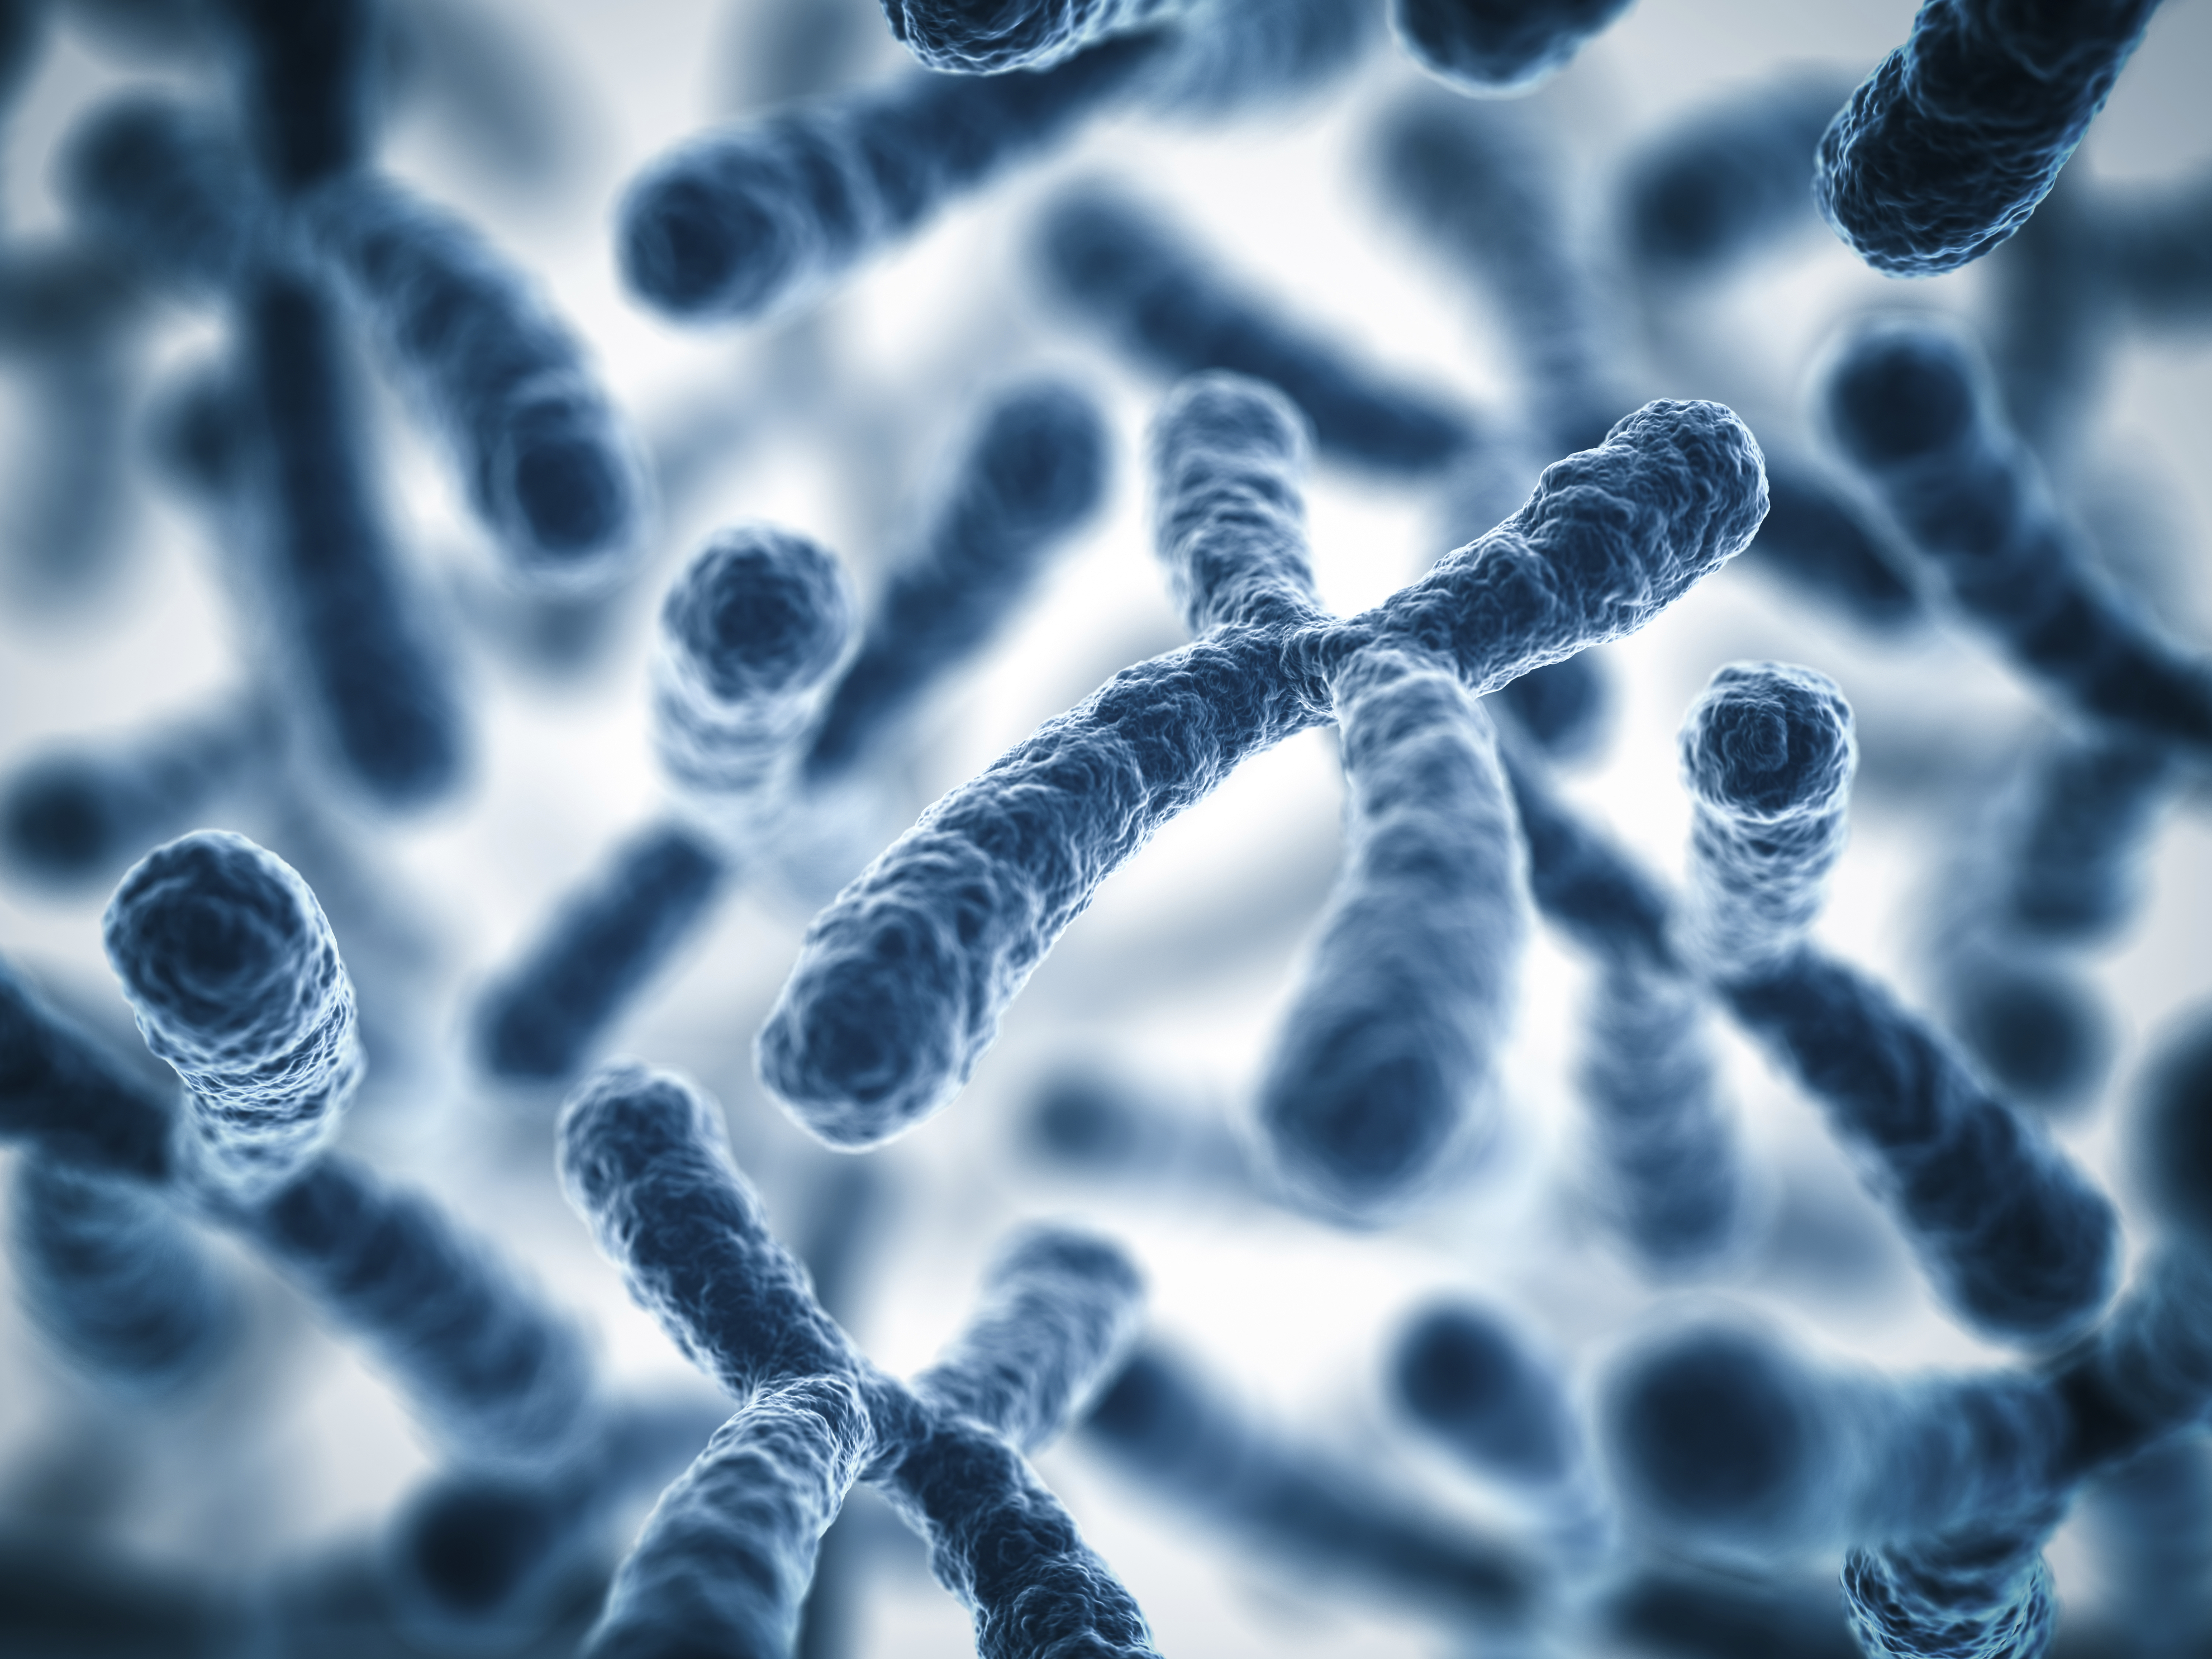 13 chromosomal disorders you may not have heard of